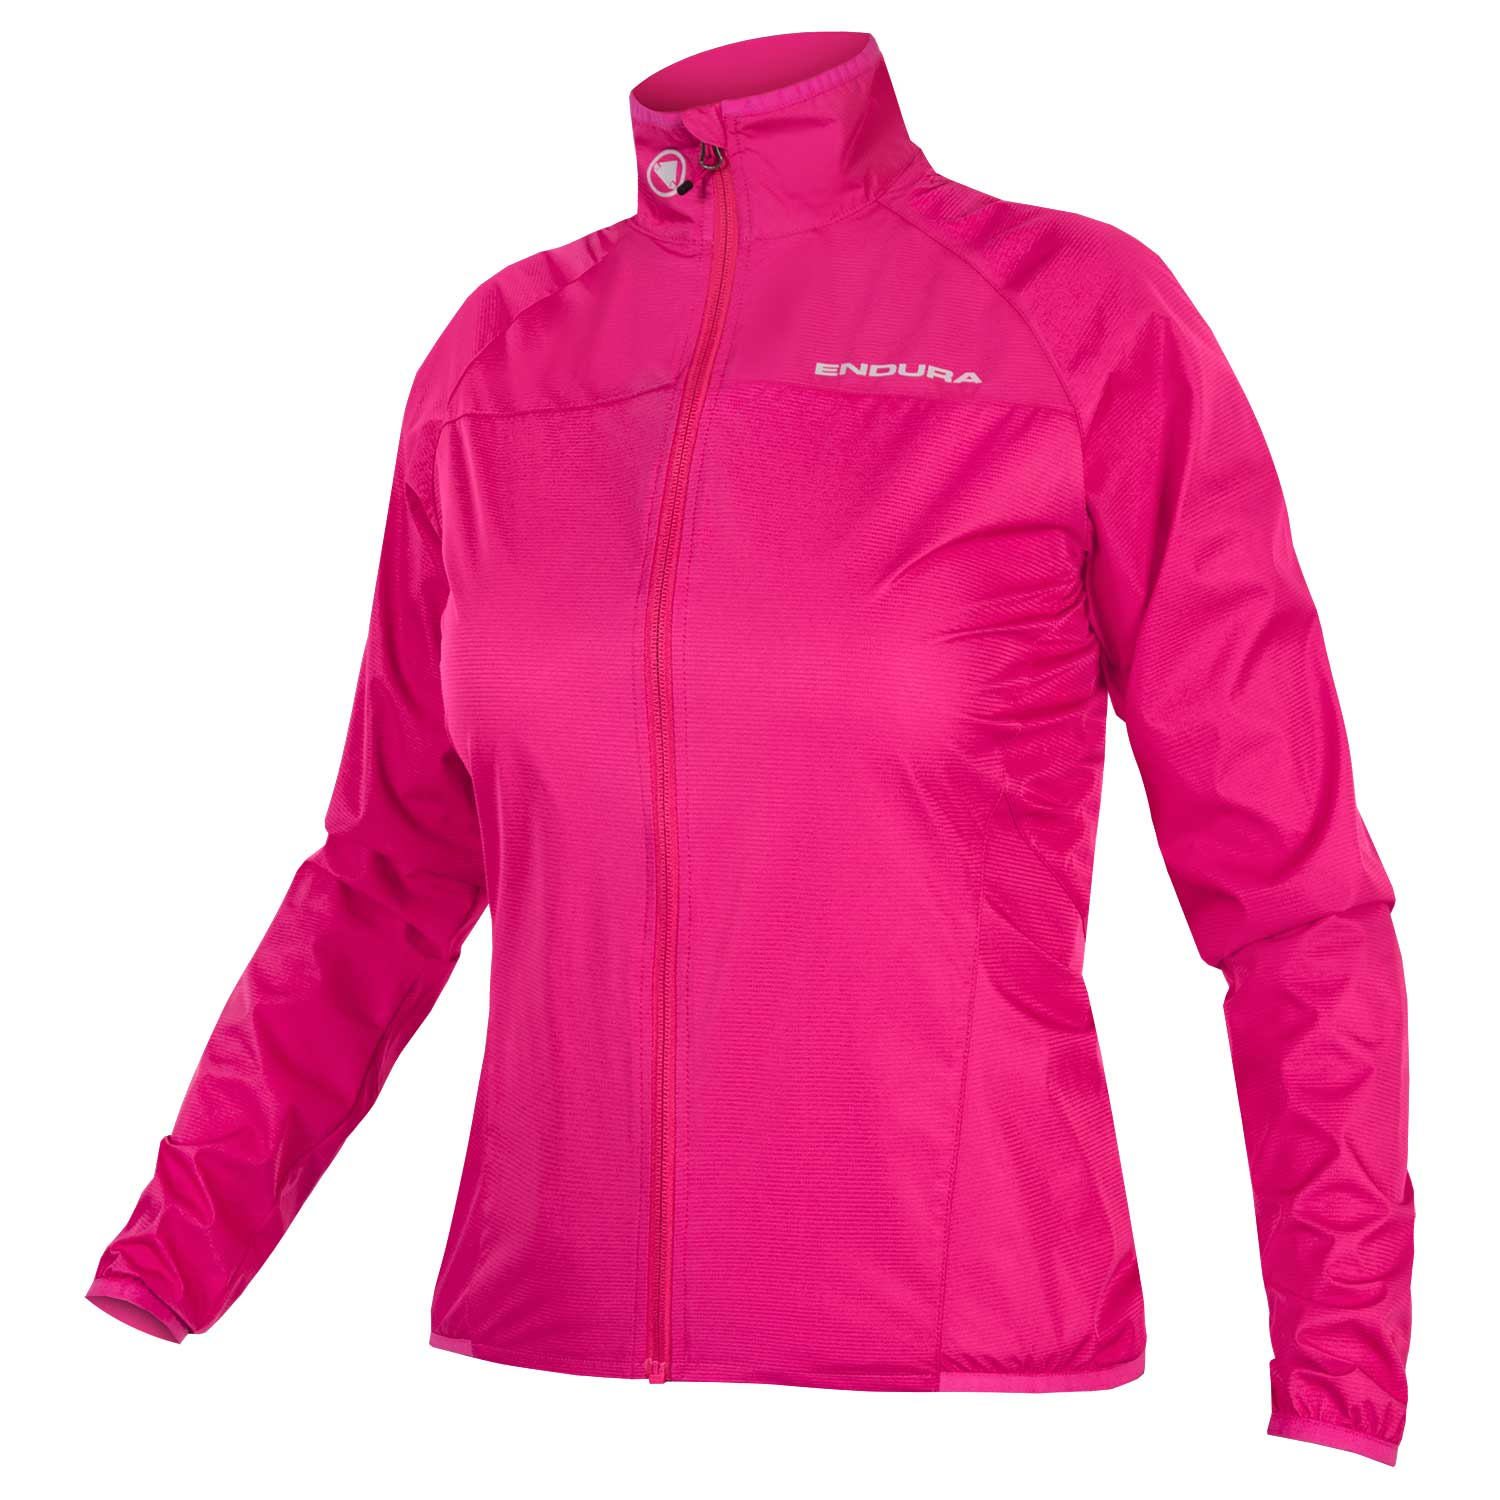 Endura Womens Jacket 3